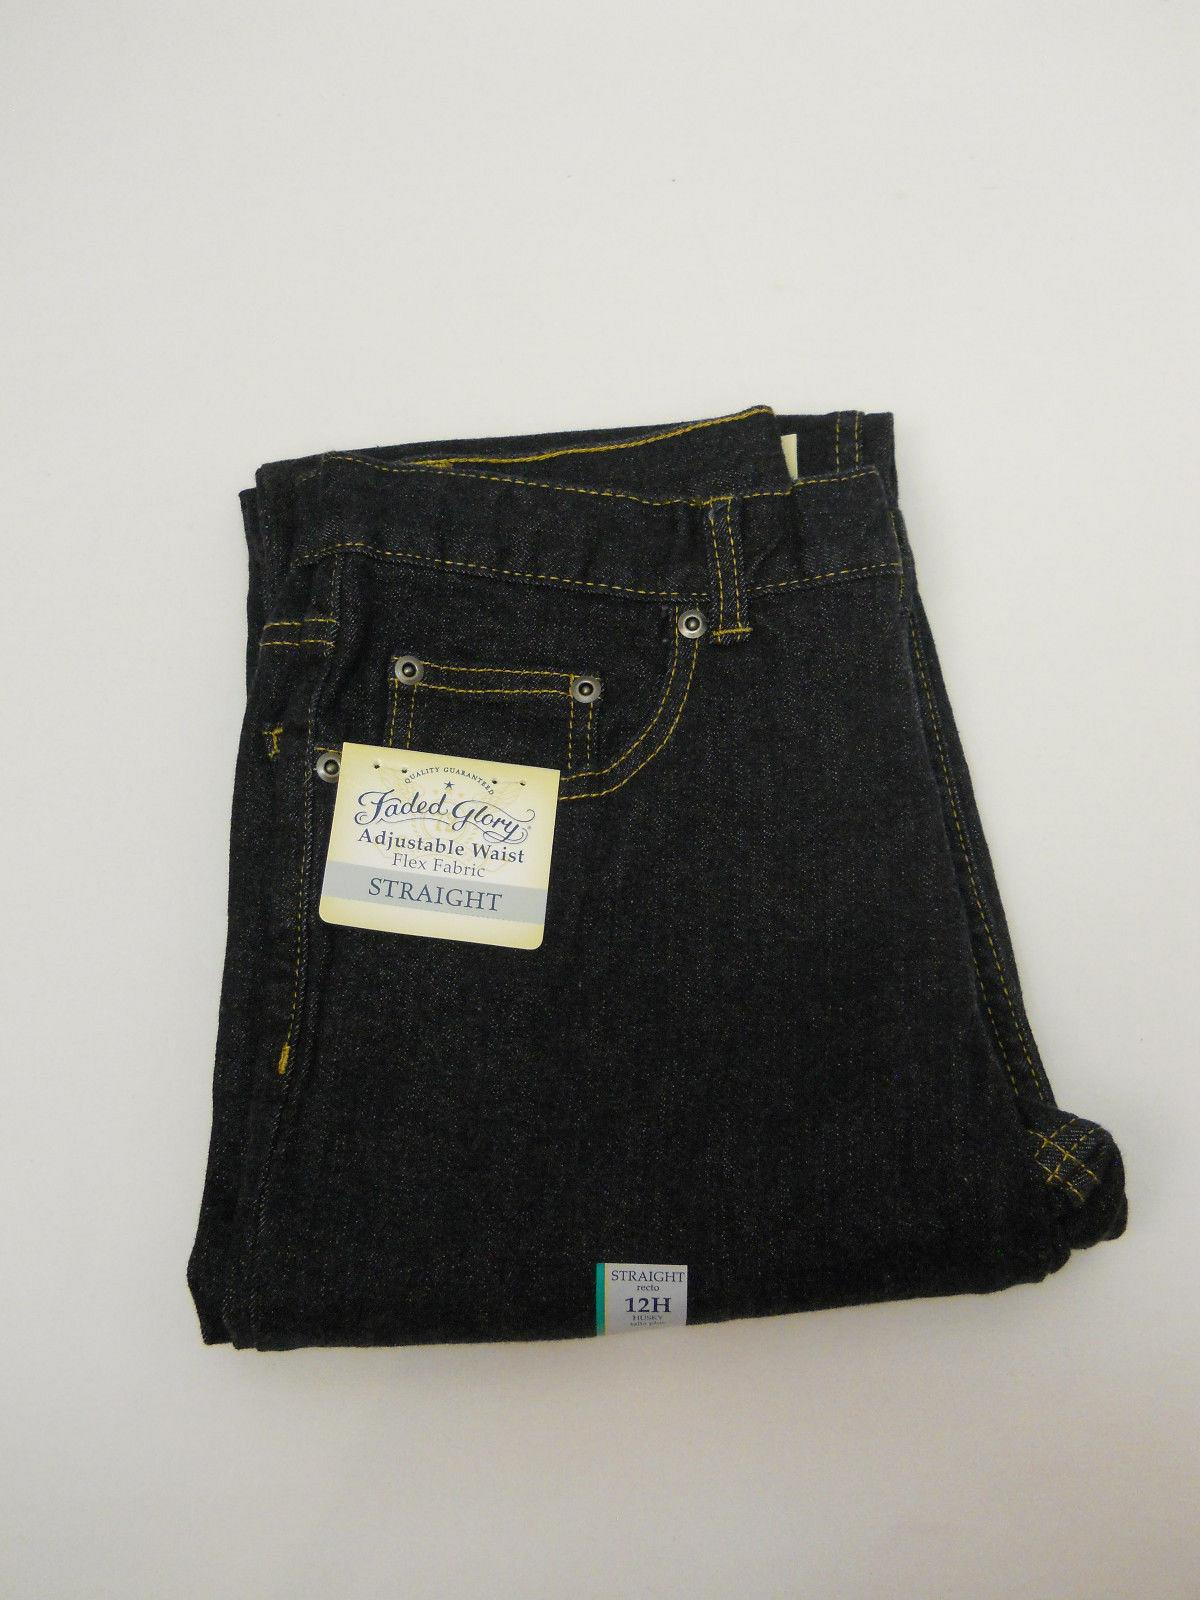 Faded Glory Boys Relaxed Jeans Black Size 7 Slim Adjustable Waist NEW